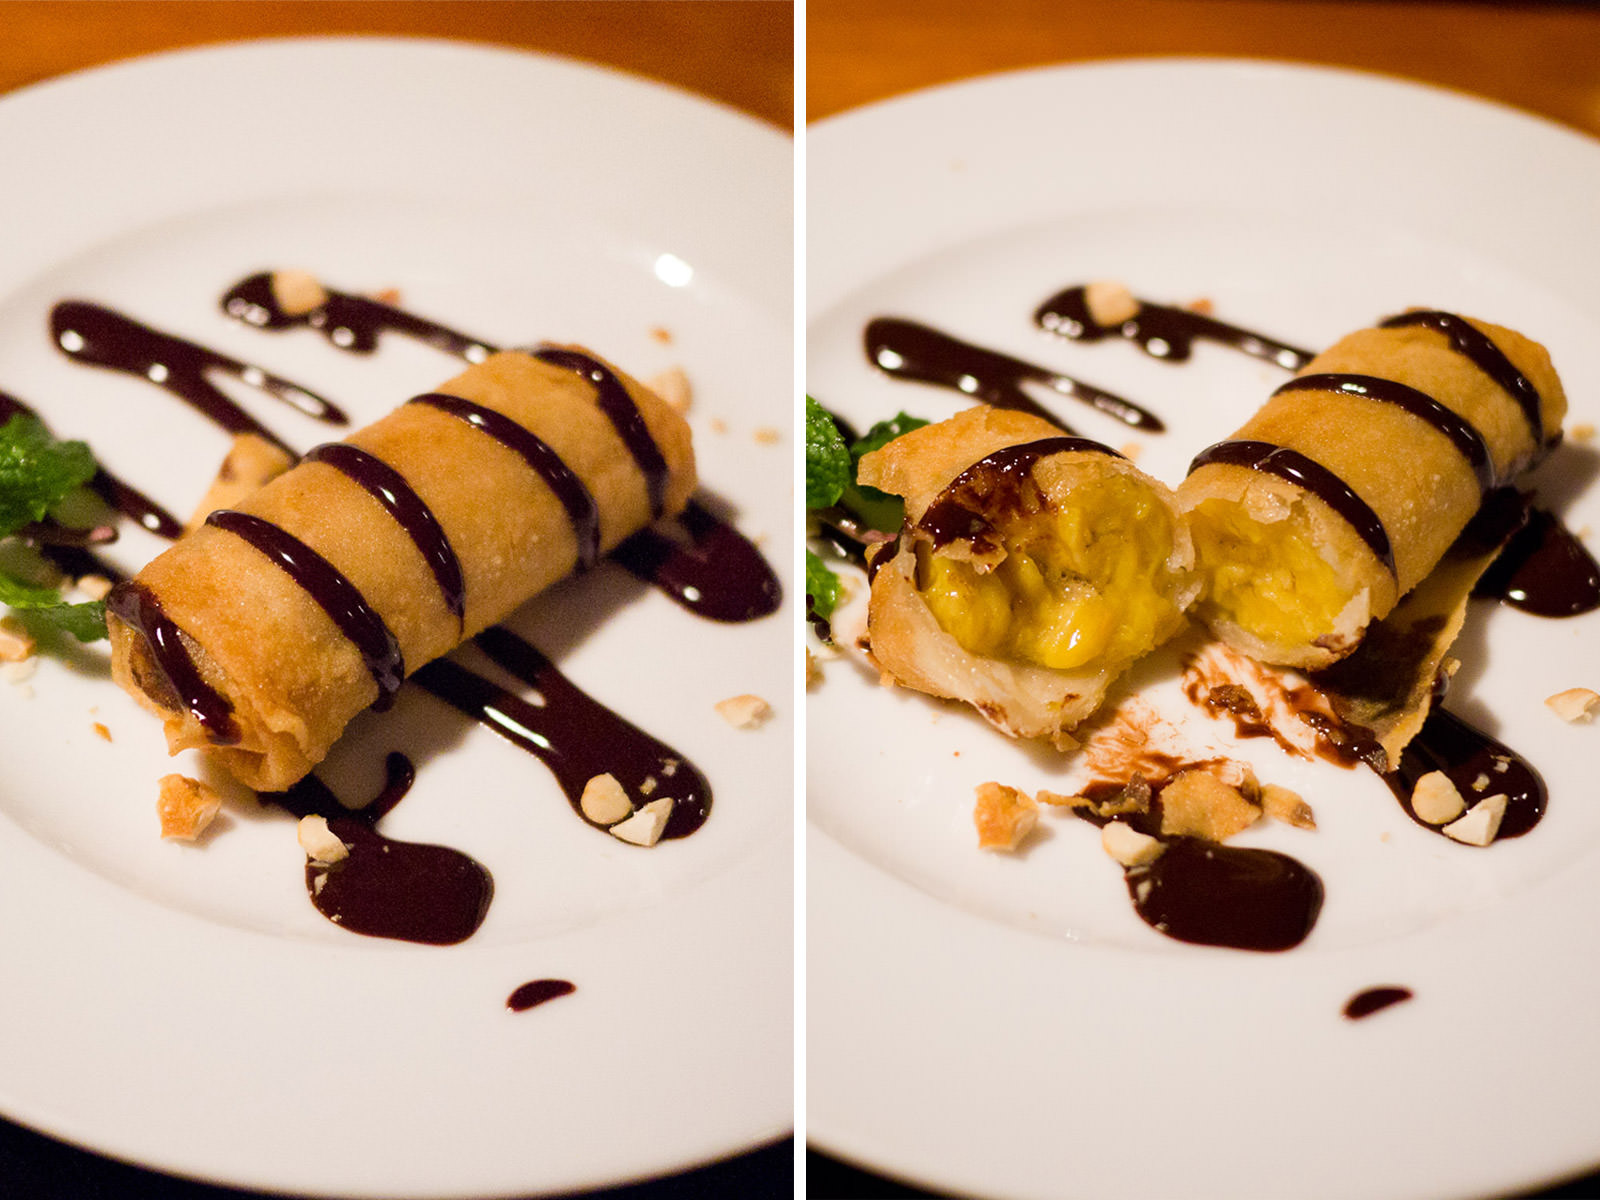 Deep fried banana spring roll with chocolate sauce